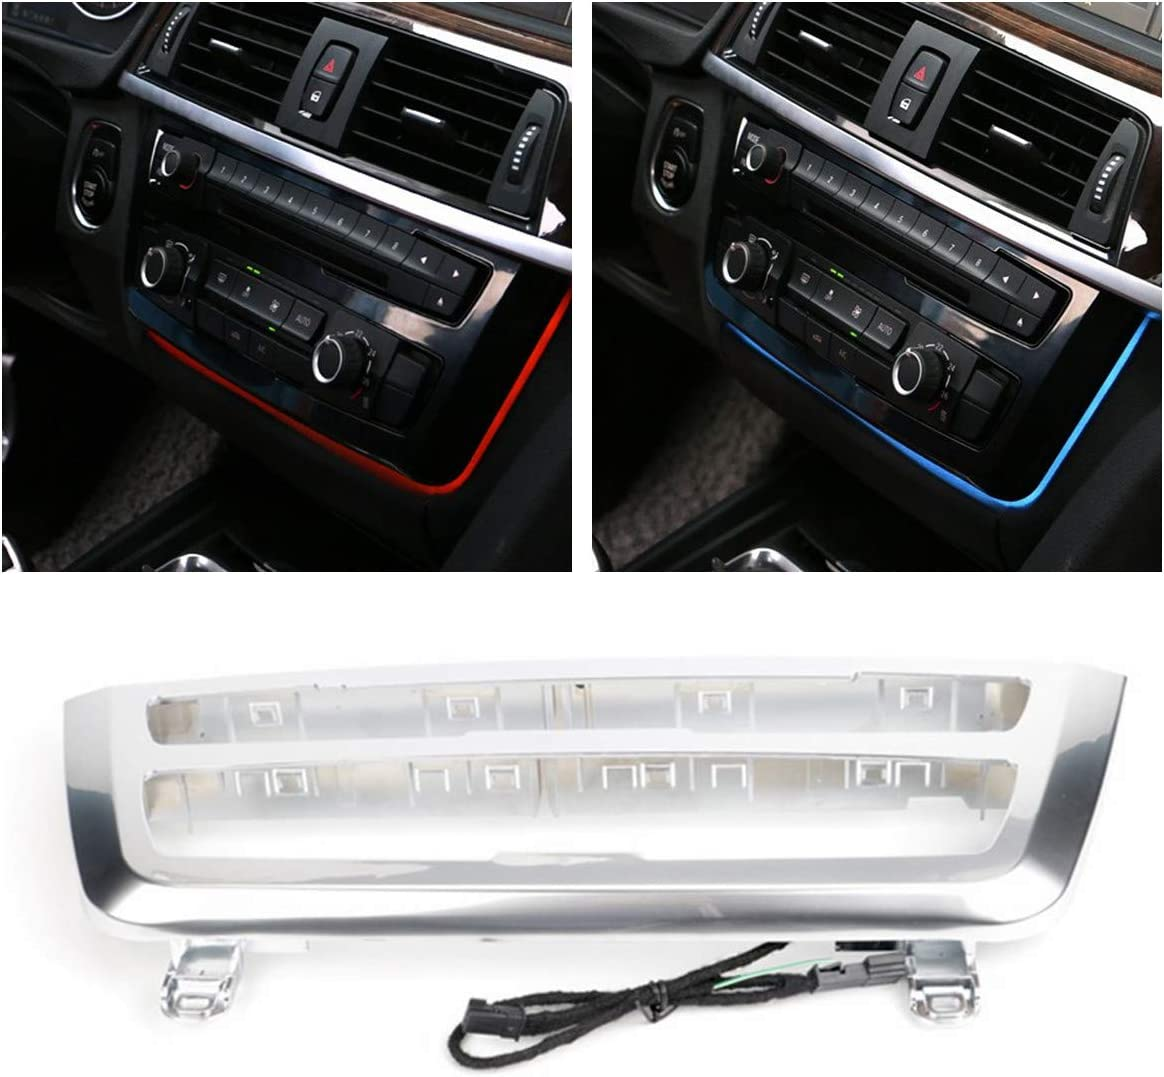 For BMW f30 Car Ambient lighting For BMW 3 4 Series F30 F35 3GT M3 M4 2012 2013 2014 2015 2016-2019 Carbon Fiber Center Console Lights Air Conditioning AC Panel Replacement Trim Interior Accessories